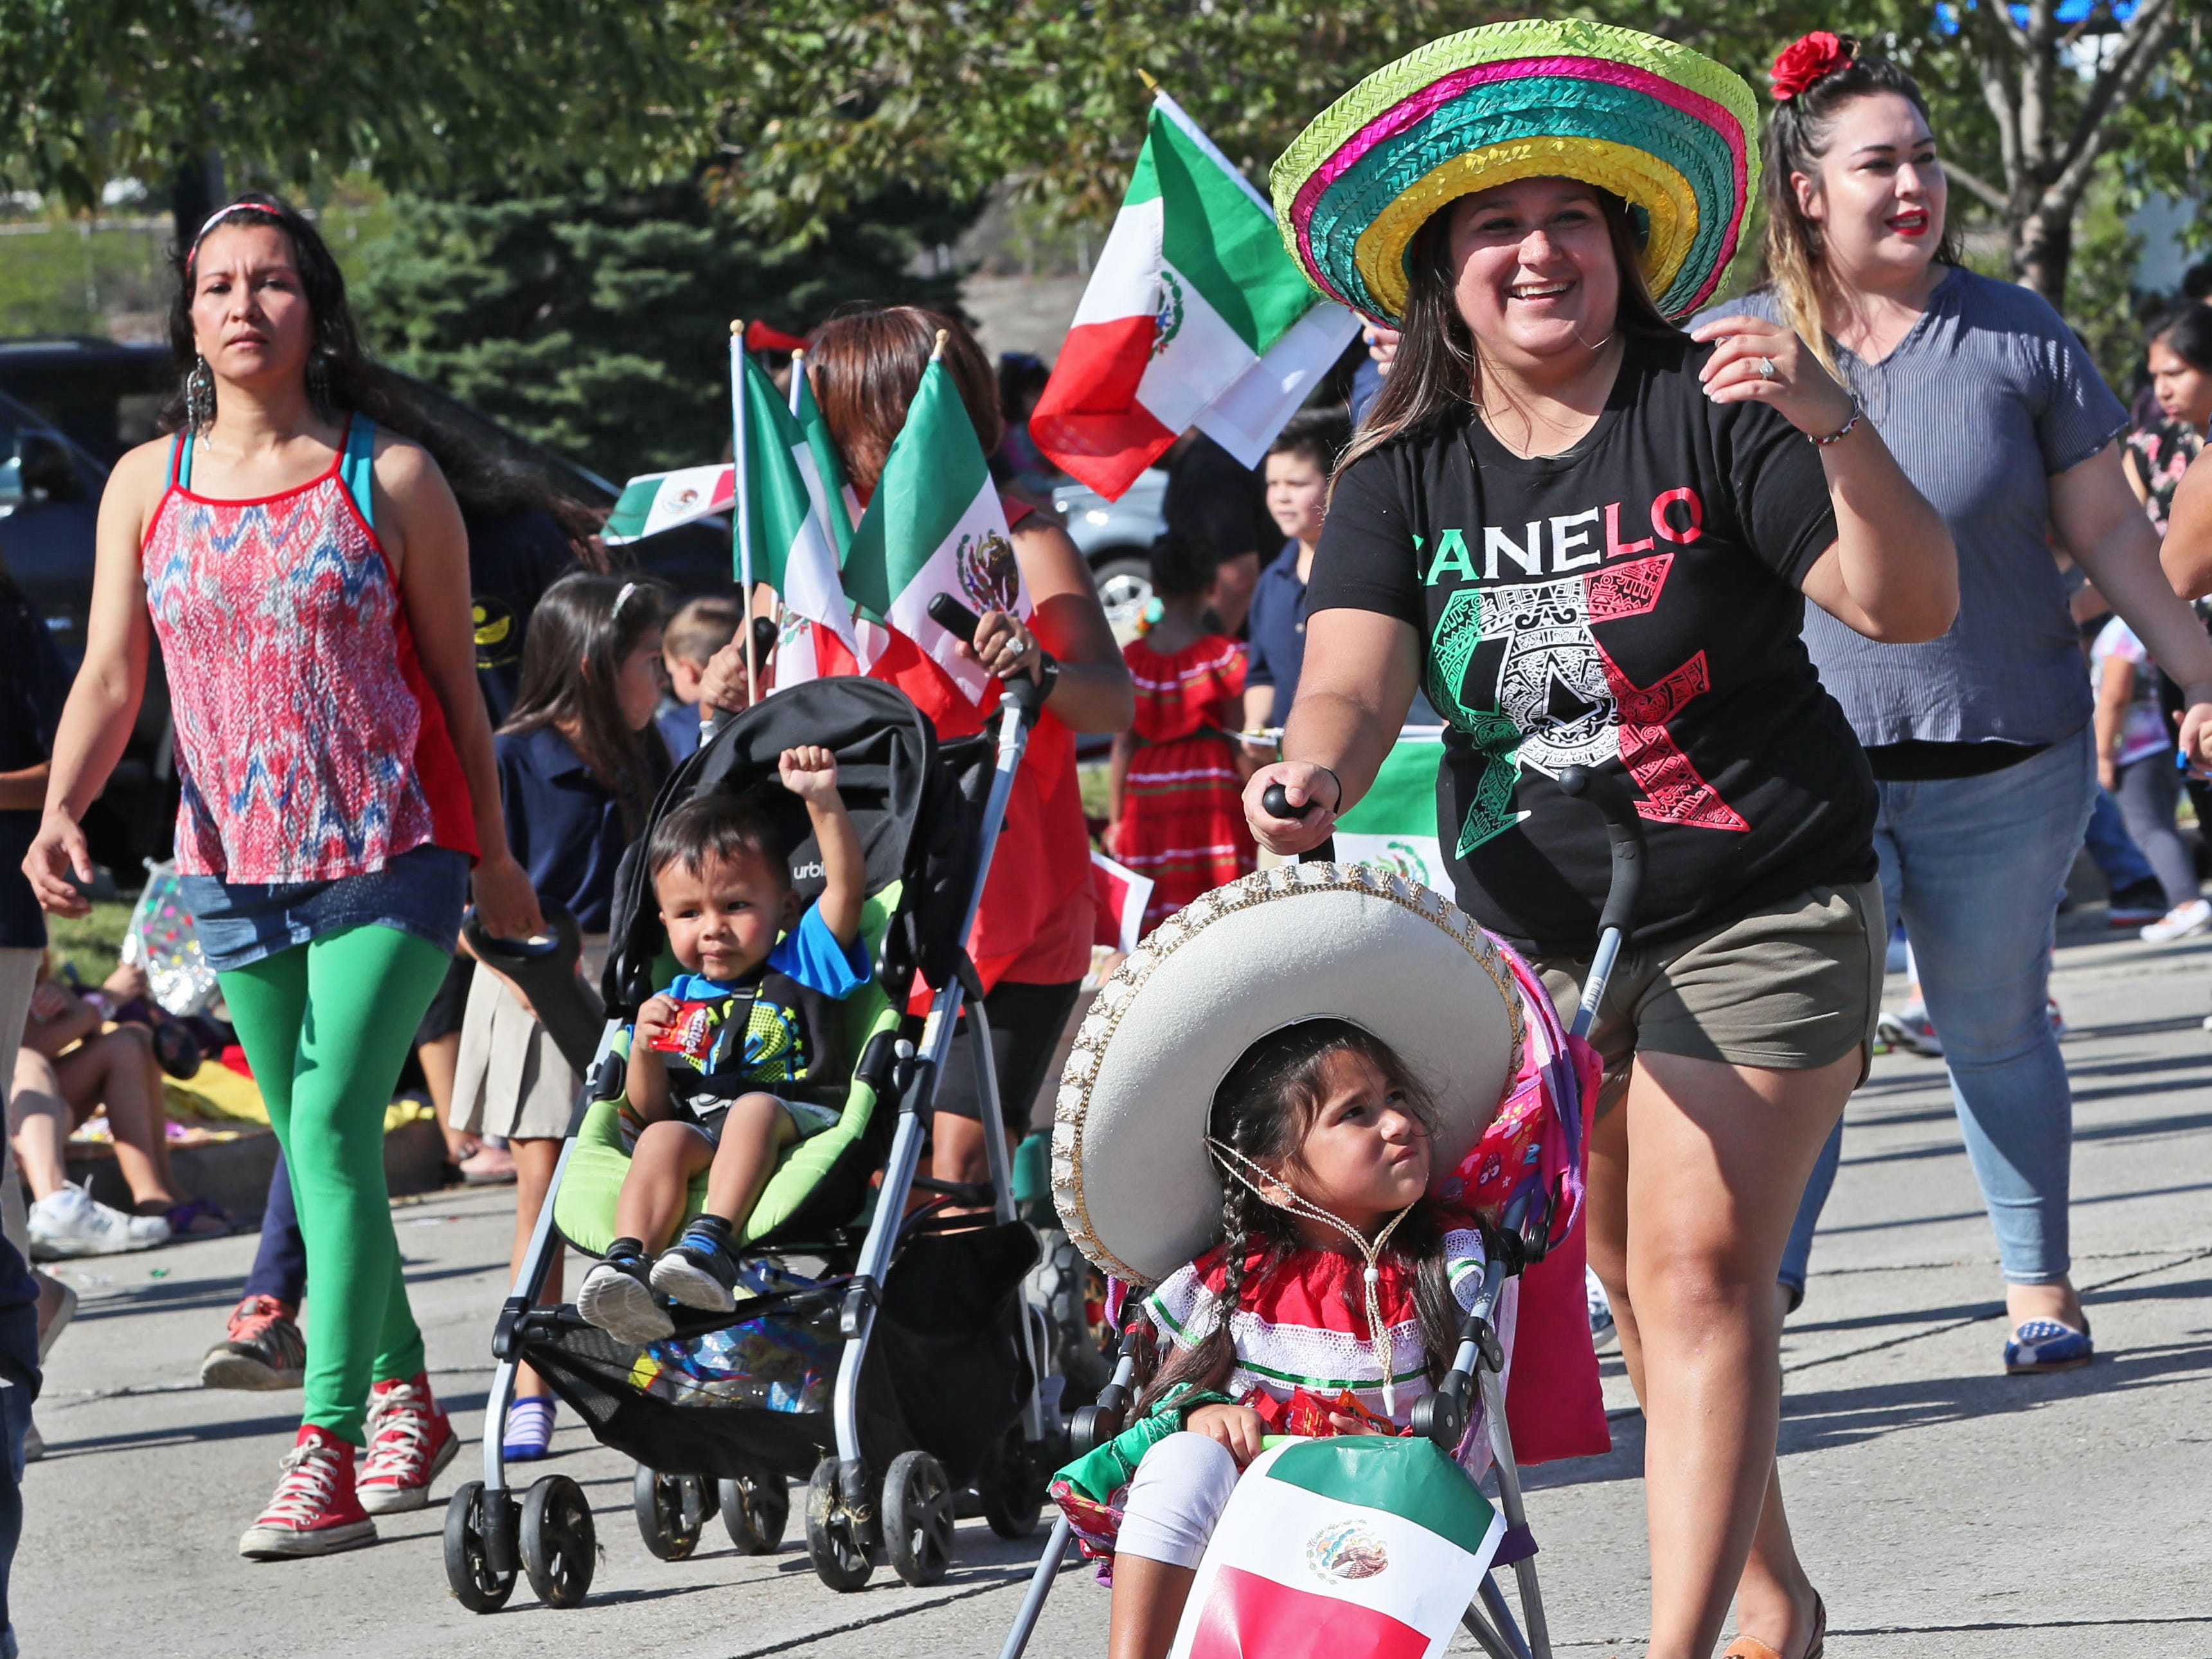 Vanessa Acosta of Milwaukee (right) pushes her daughter Alyna Martinez, 3, in a stroller while taking part in the parade with other parents and staff of St. Joseph Academy.